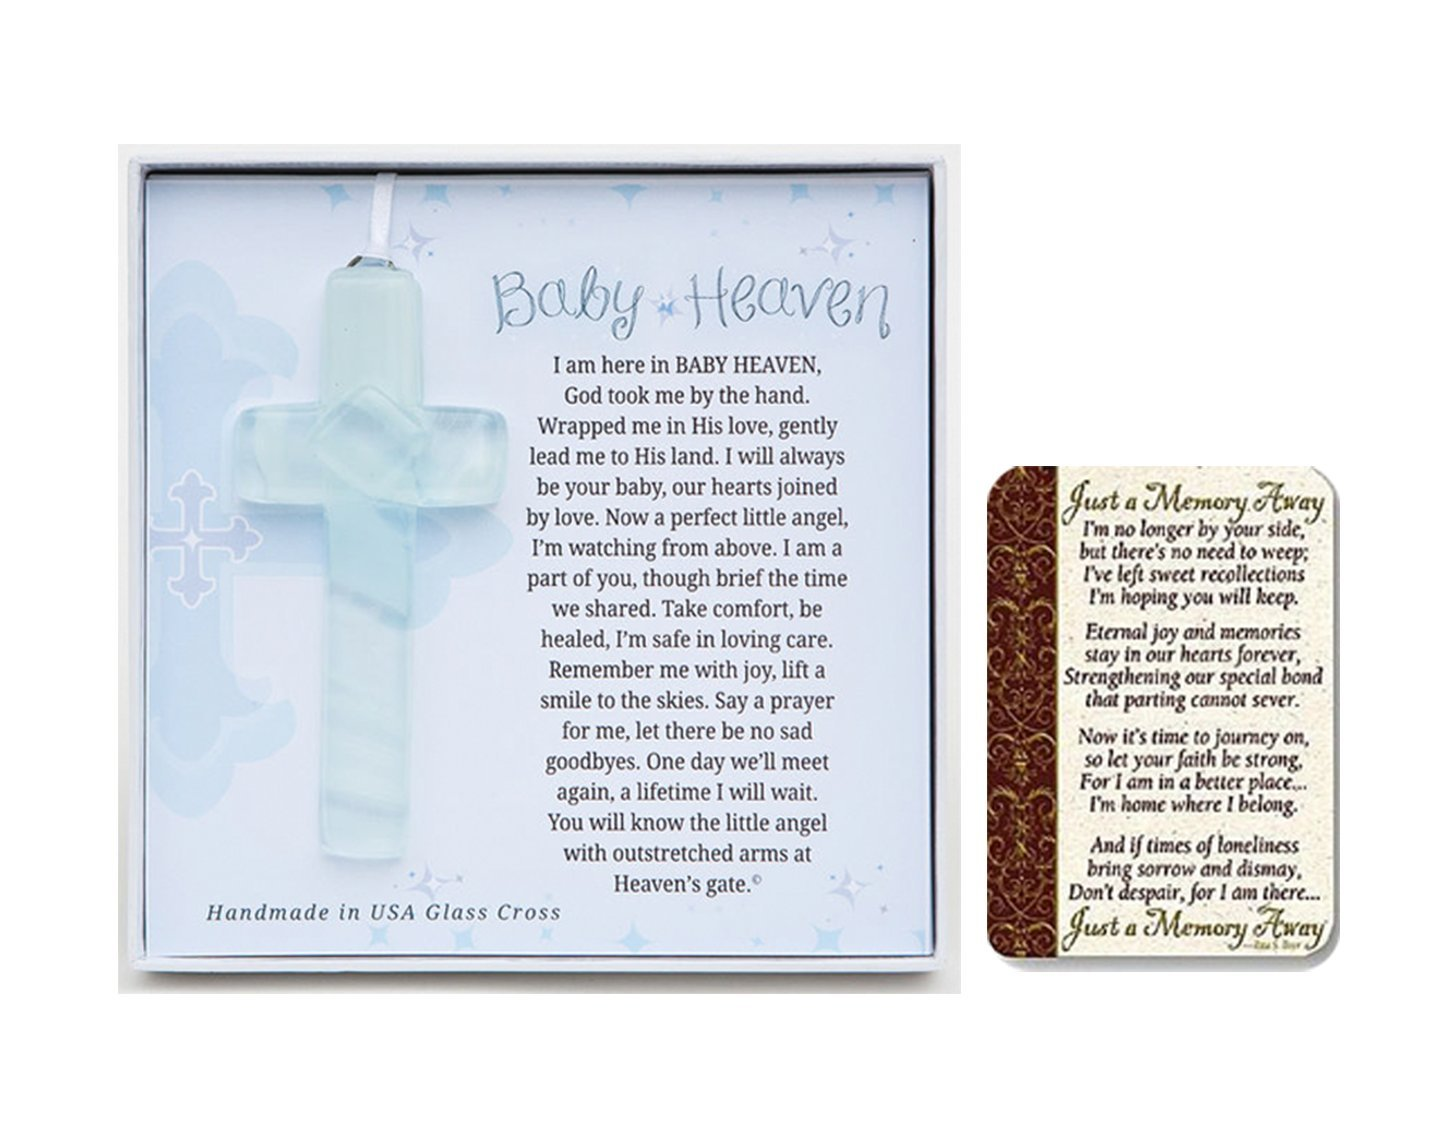 Grandparent Gift Co Baby Heaven Glass Cross, with Just a Memory Away Card | Infant Loss Gift Set Mixed